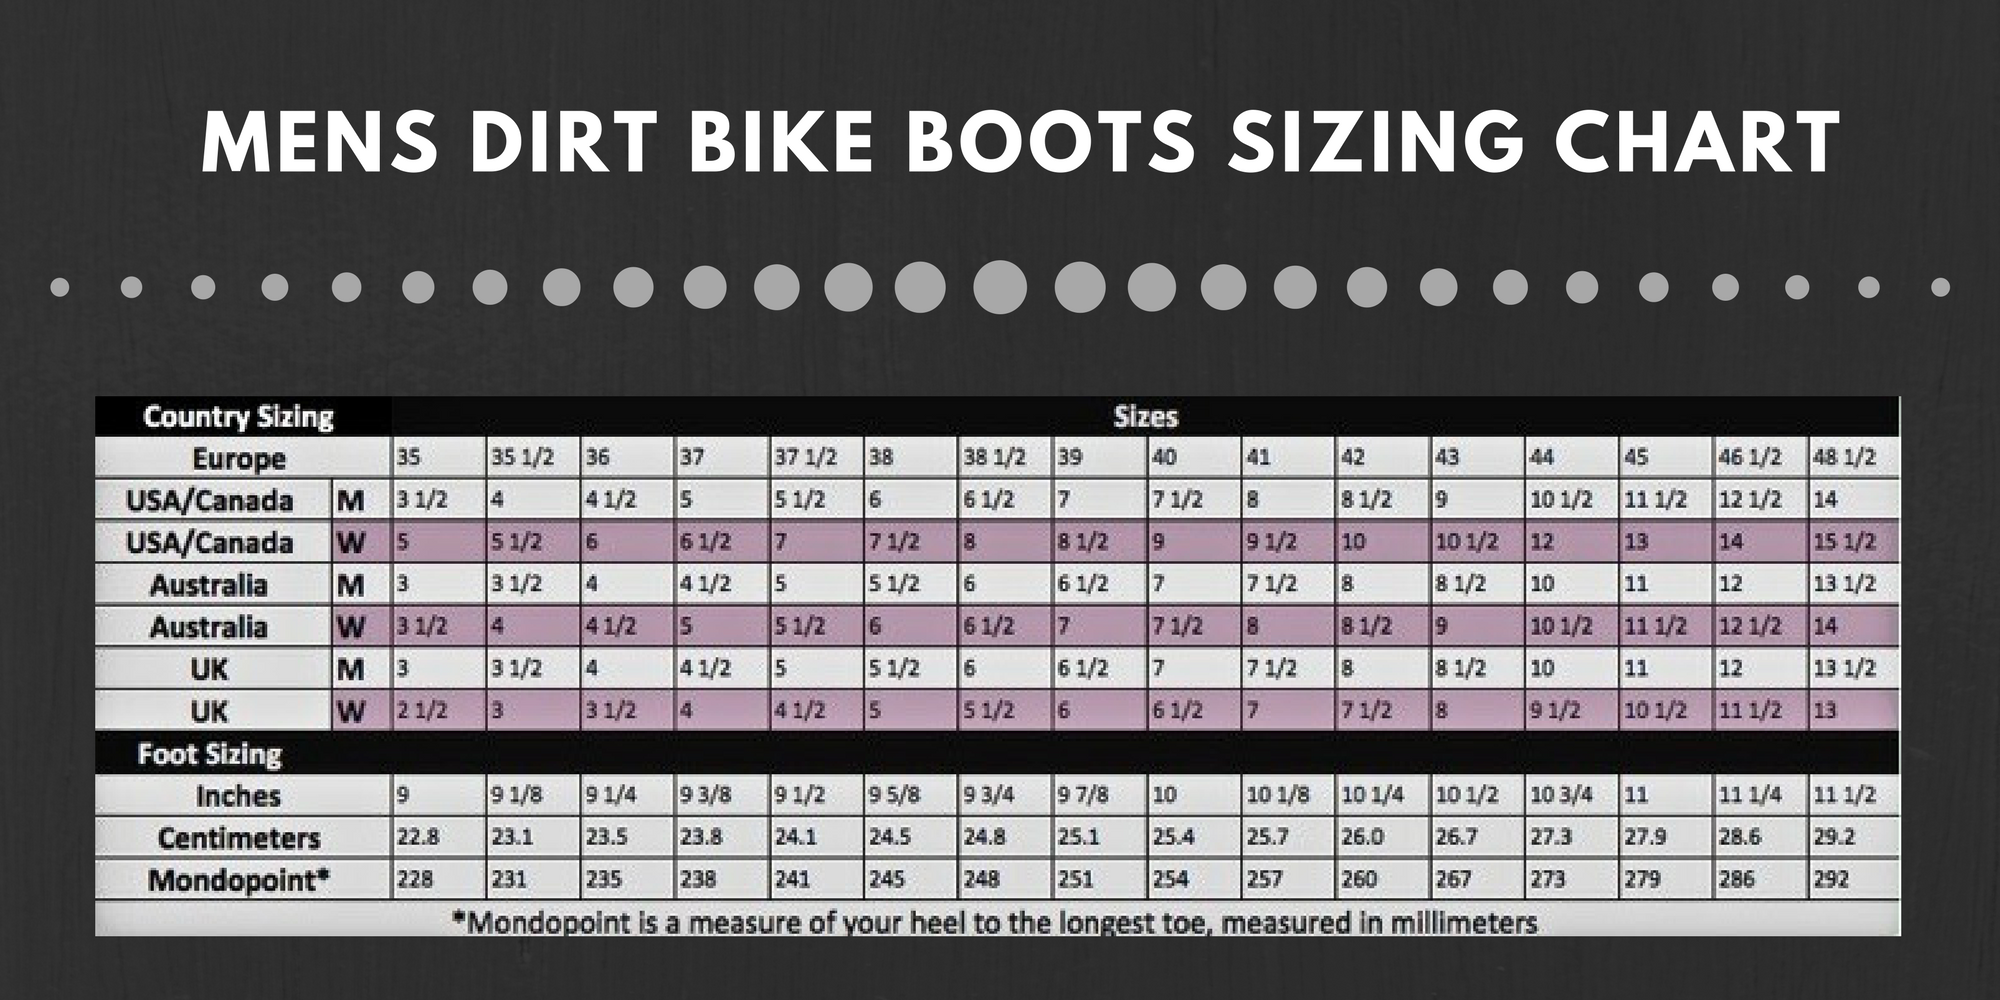 Dirt Bike Boots The Definitive Guide To Selecting Sizing And